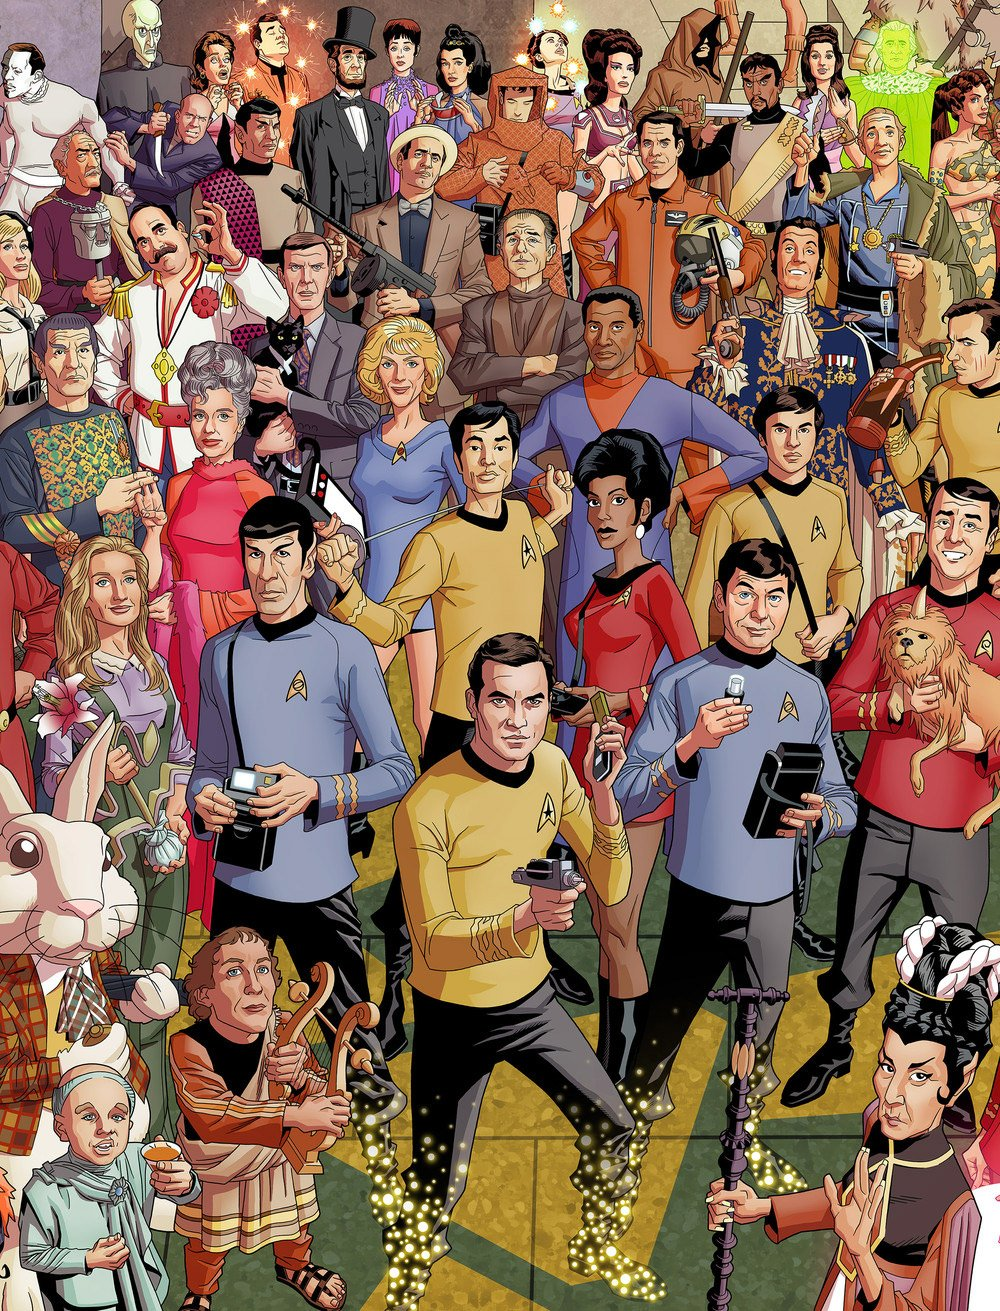 star trek 50th anniversary puzzle has 3000 pieces of frustration